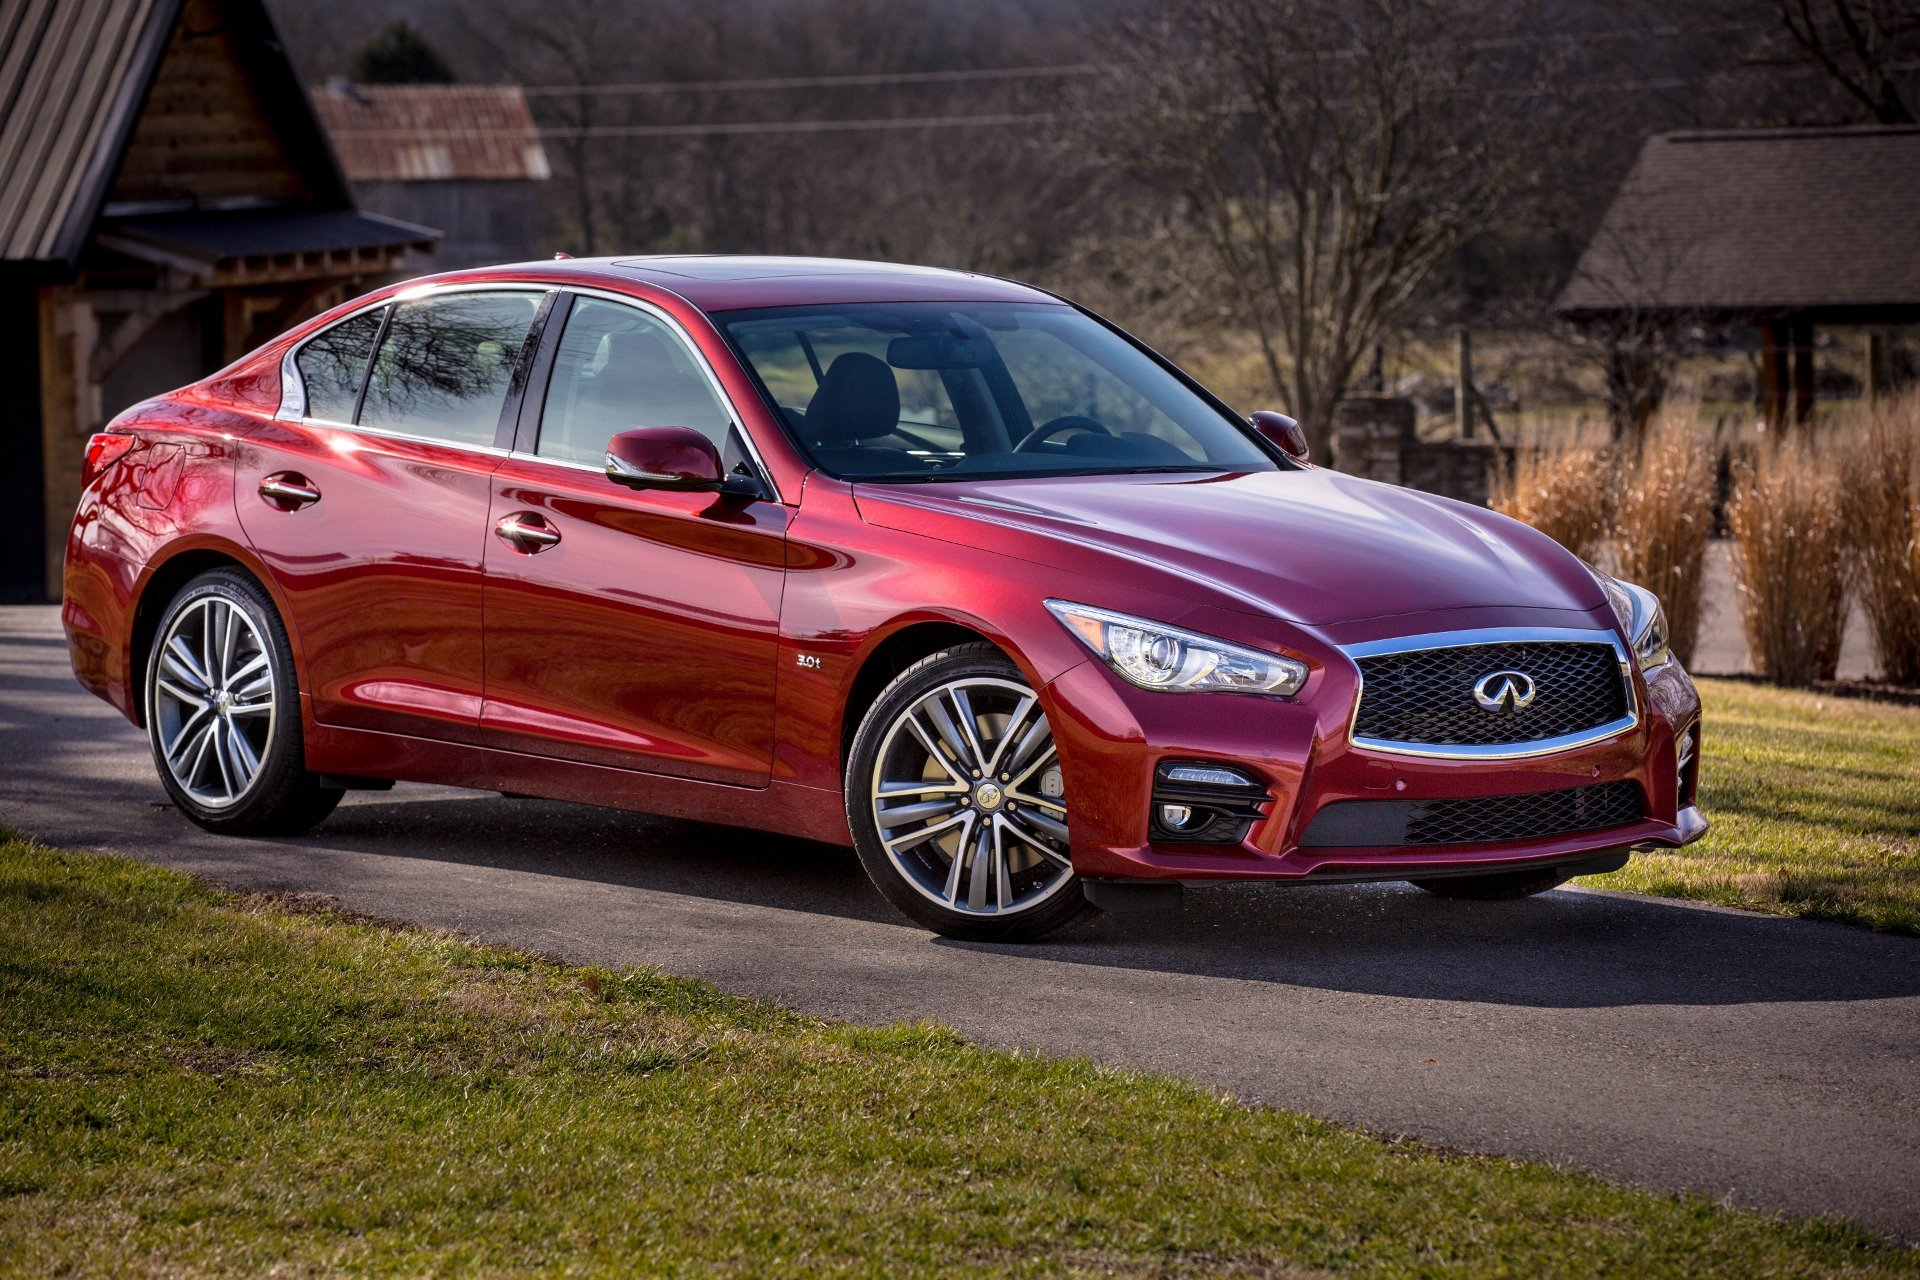 New 2019 INFINITI-Q50 Red Sport 400 Q50 Red Sport 400 for sale $53,250 at M and V Leasing in Brooklyn NY 11223 1